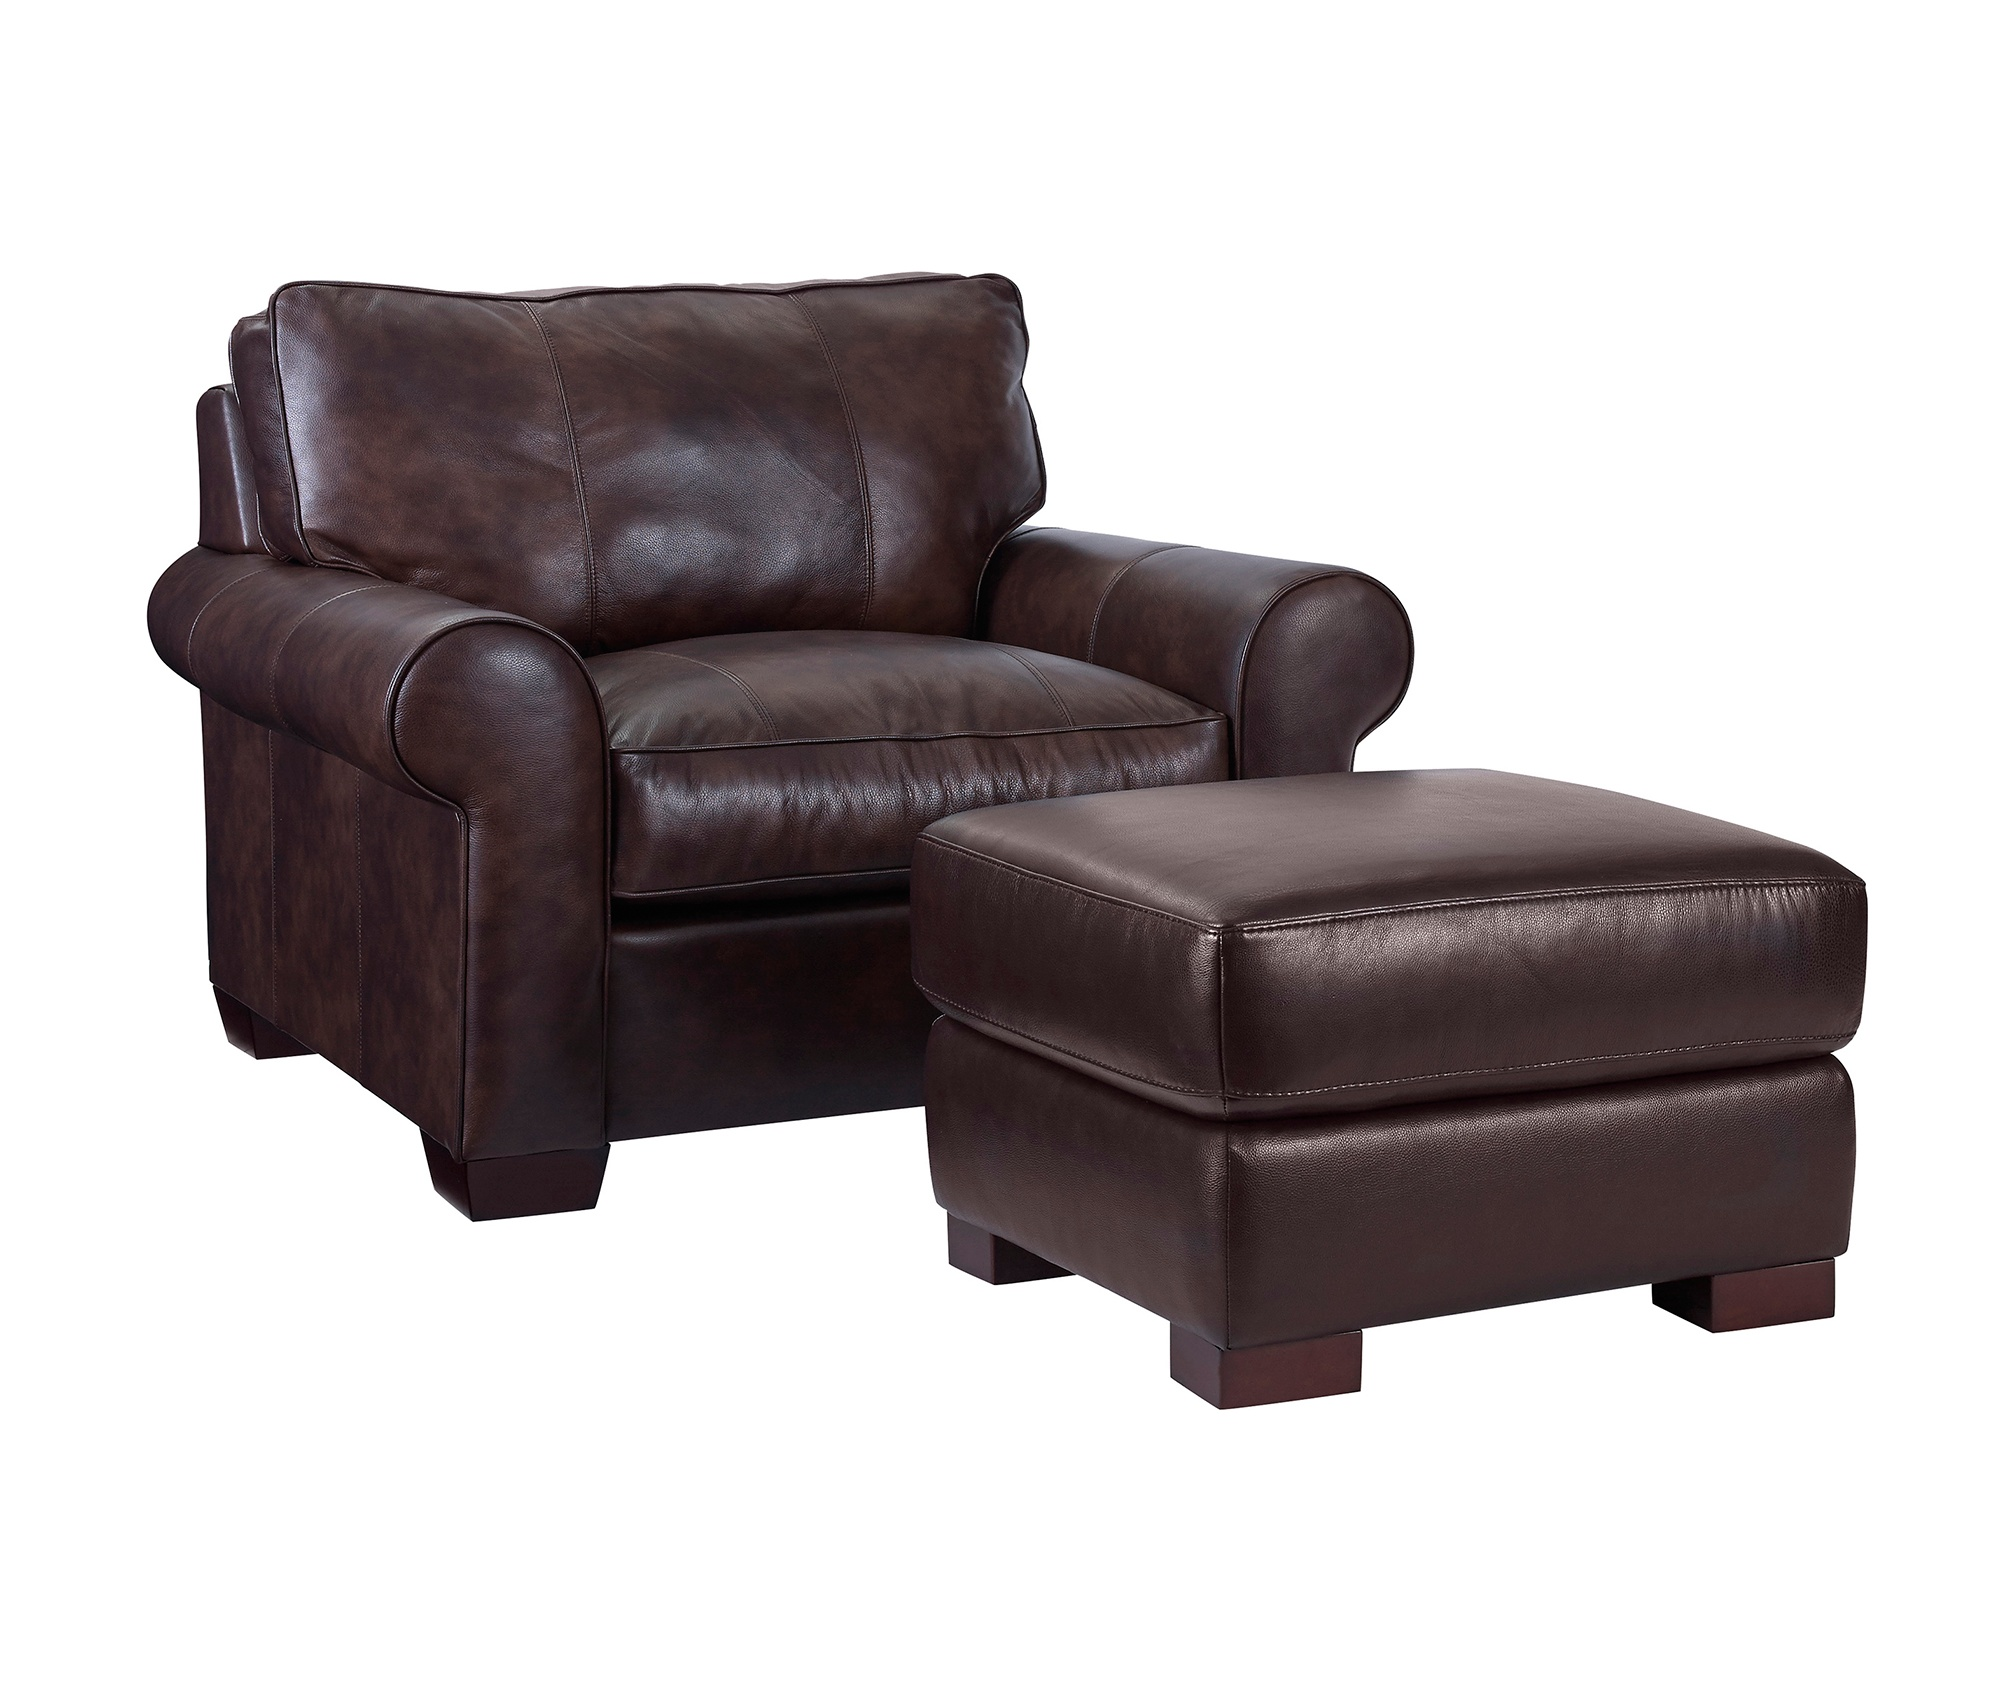 Pleasing Isadore 4272 Sofa Collection Customize 350 Sofas And Alphanode Cool Chair Designs And Ideas Alphanodeonline